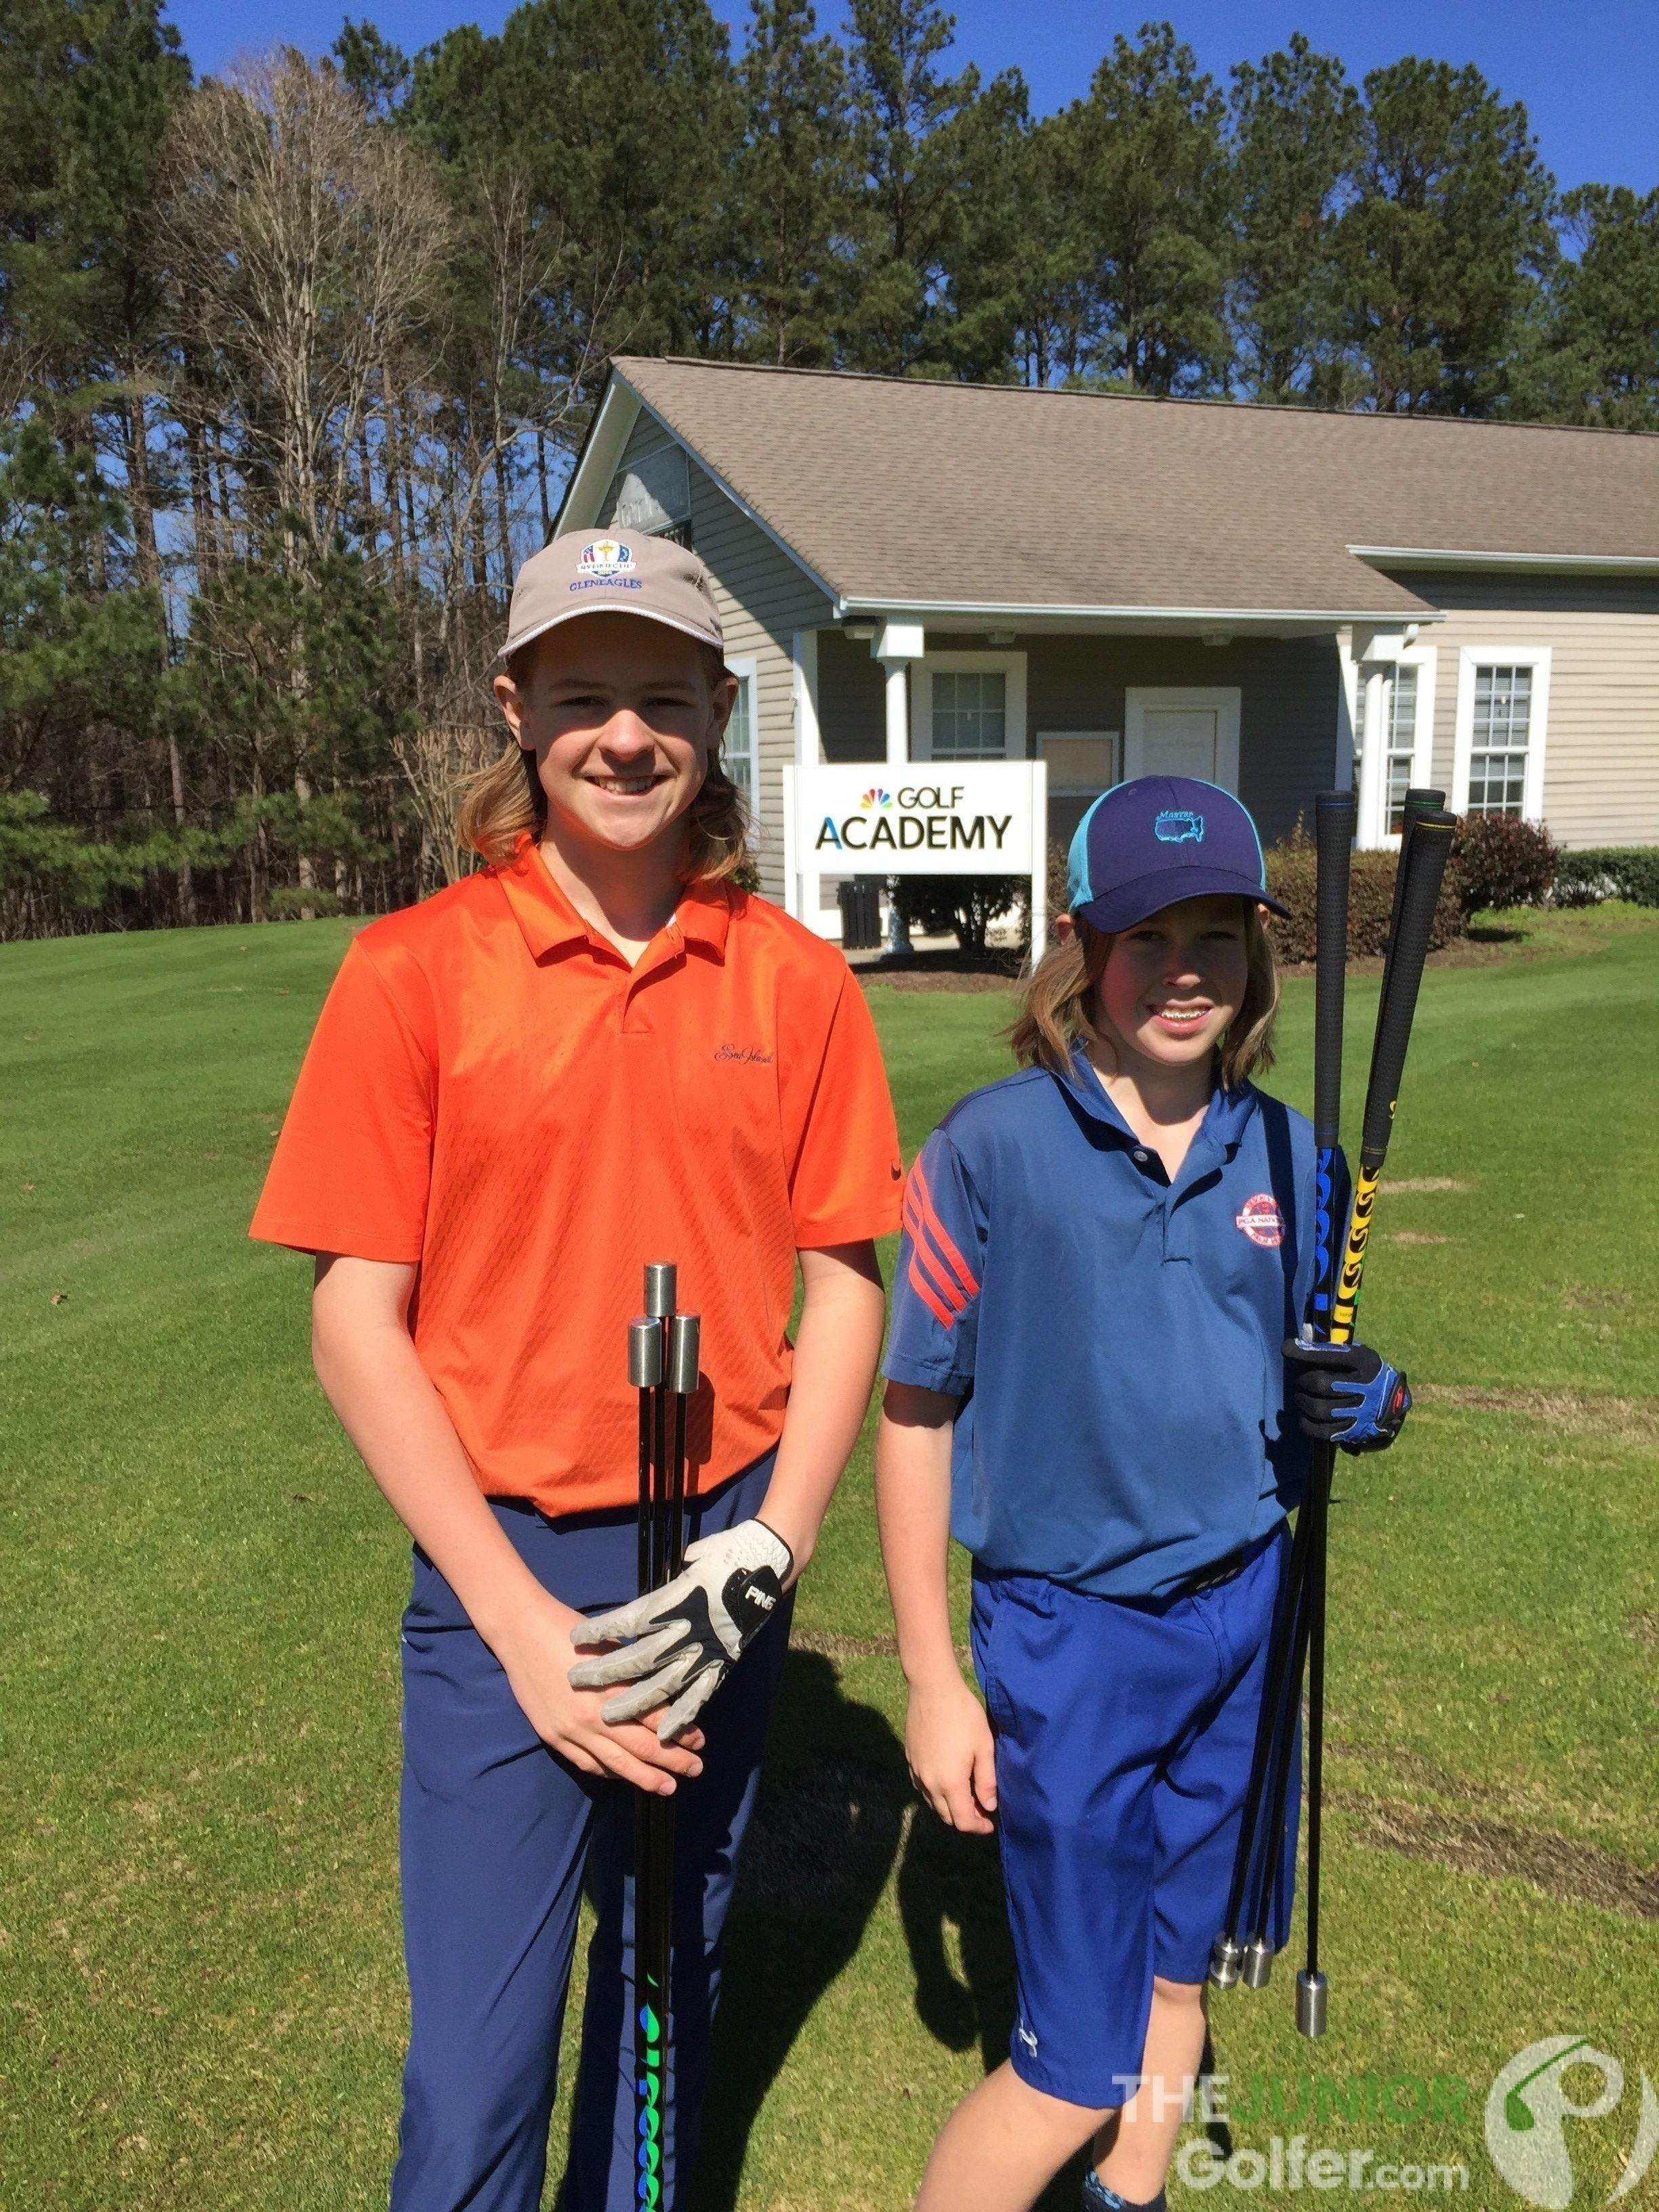 Superspeed training for junior golfers